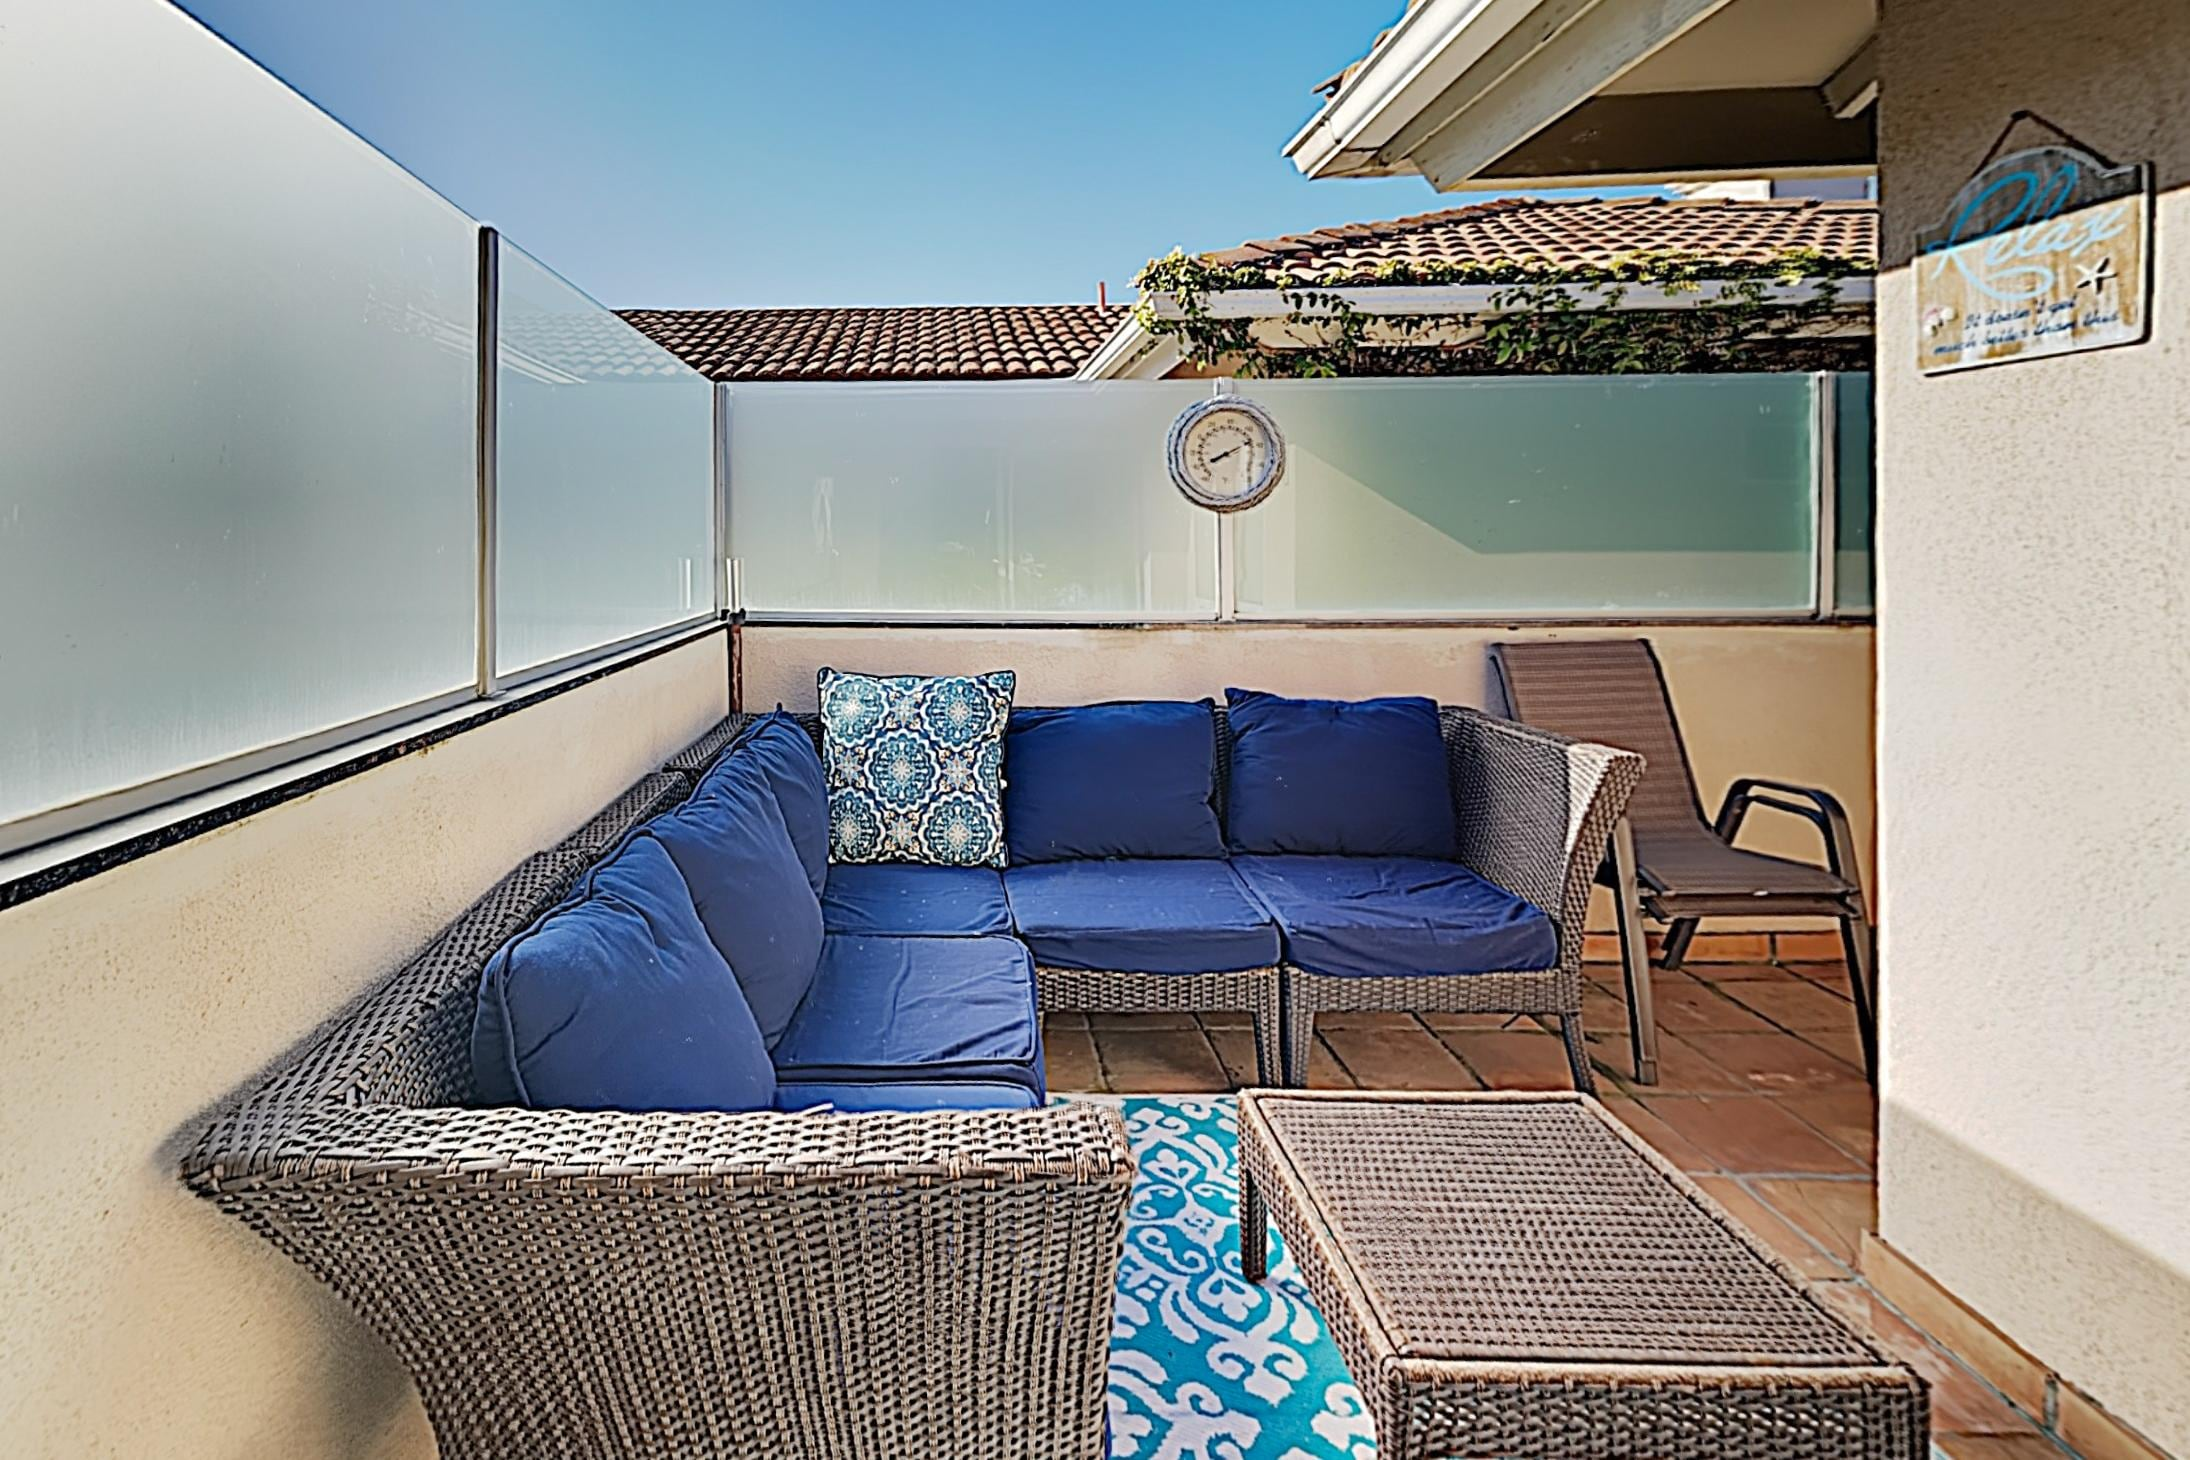 Enjoy the fresh air in a comfy lounge area on the balcony.